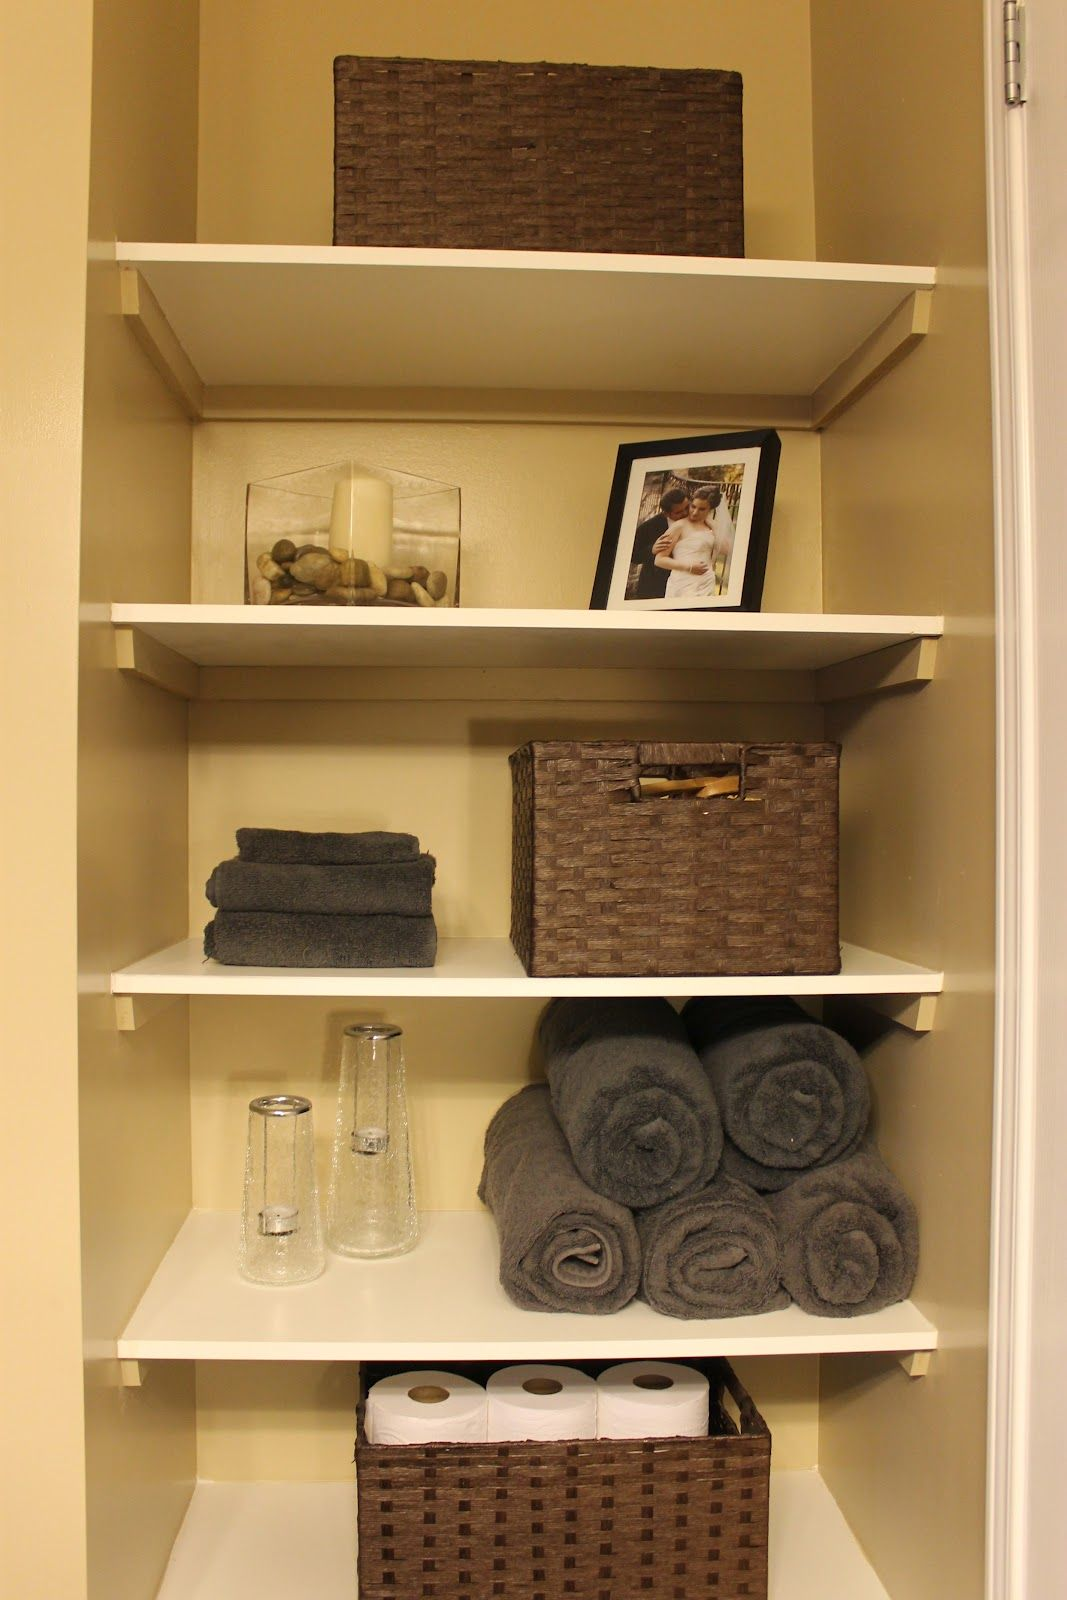 DIY: Organizing Open Shelving in a Bathroom | For the Home in 2018 ...